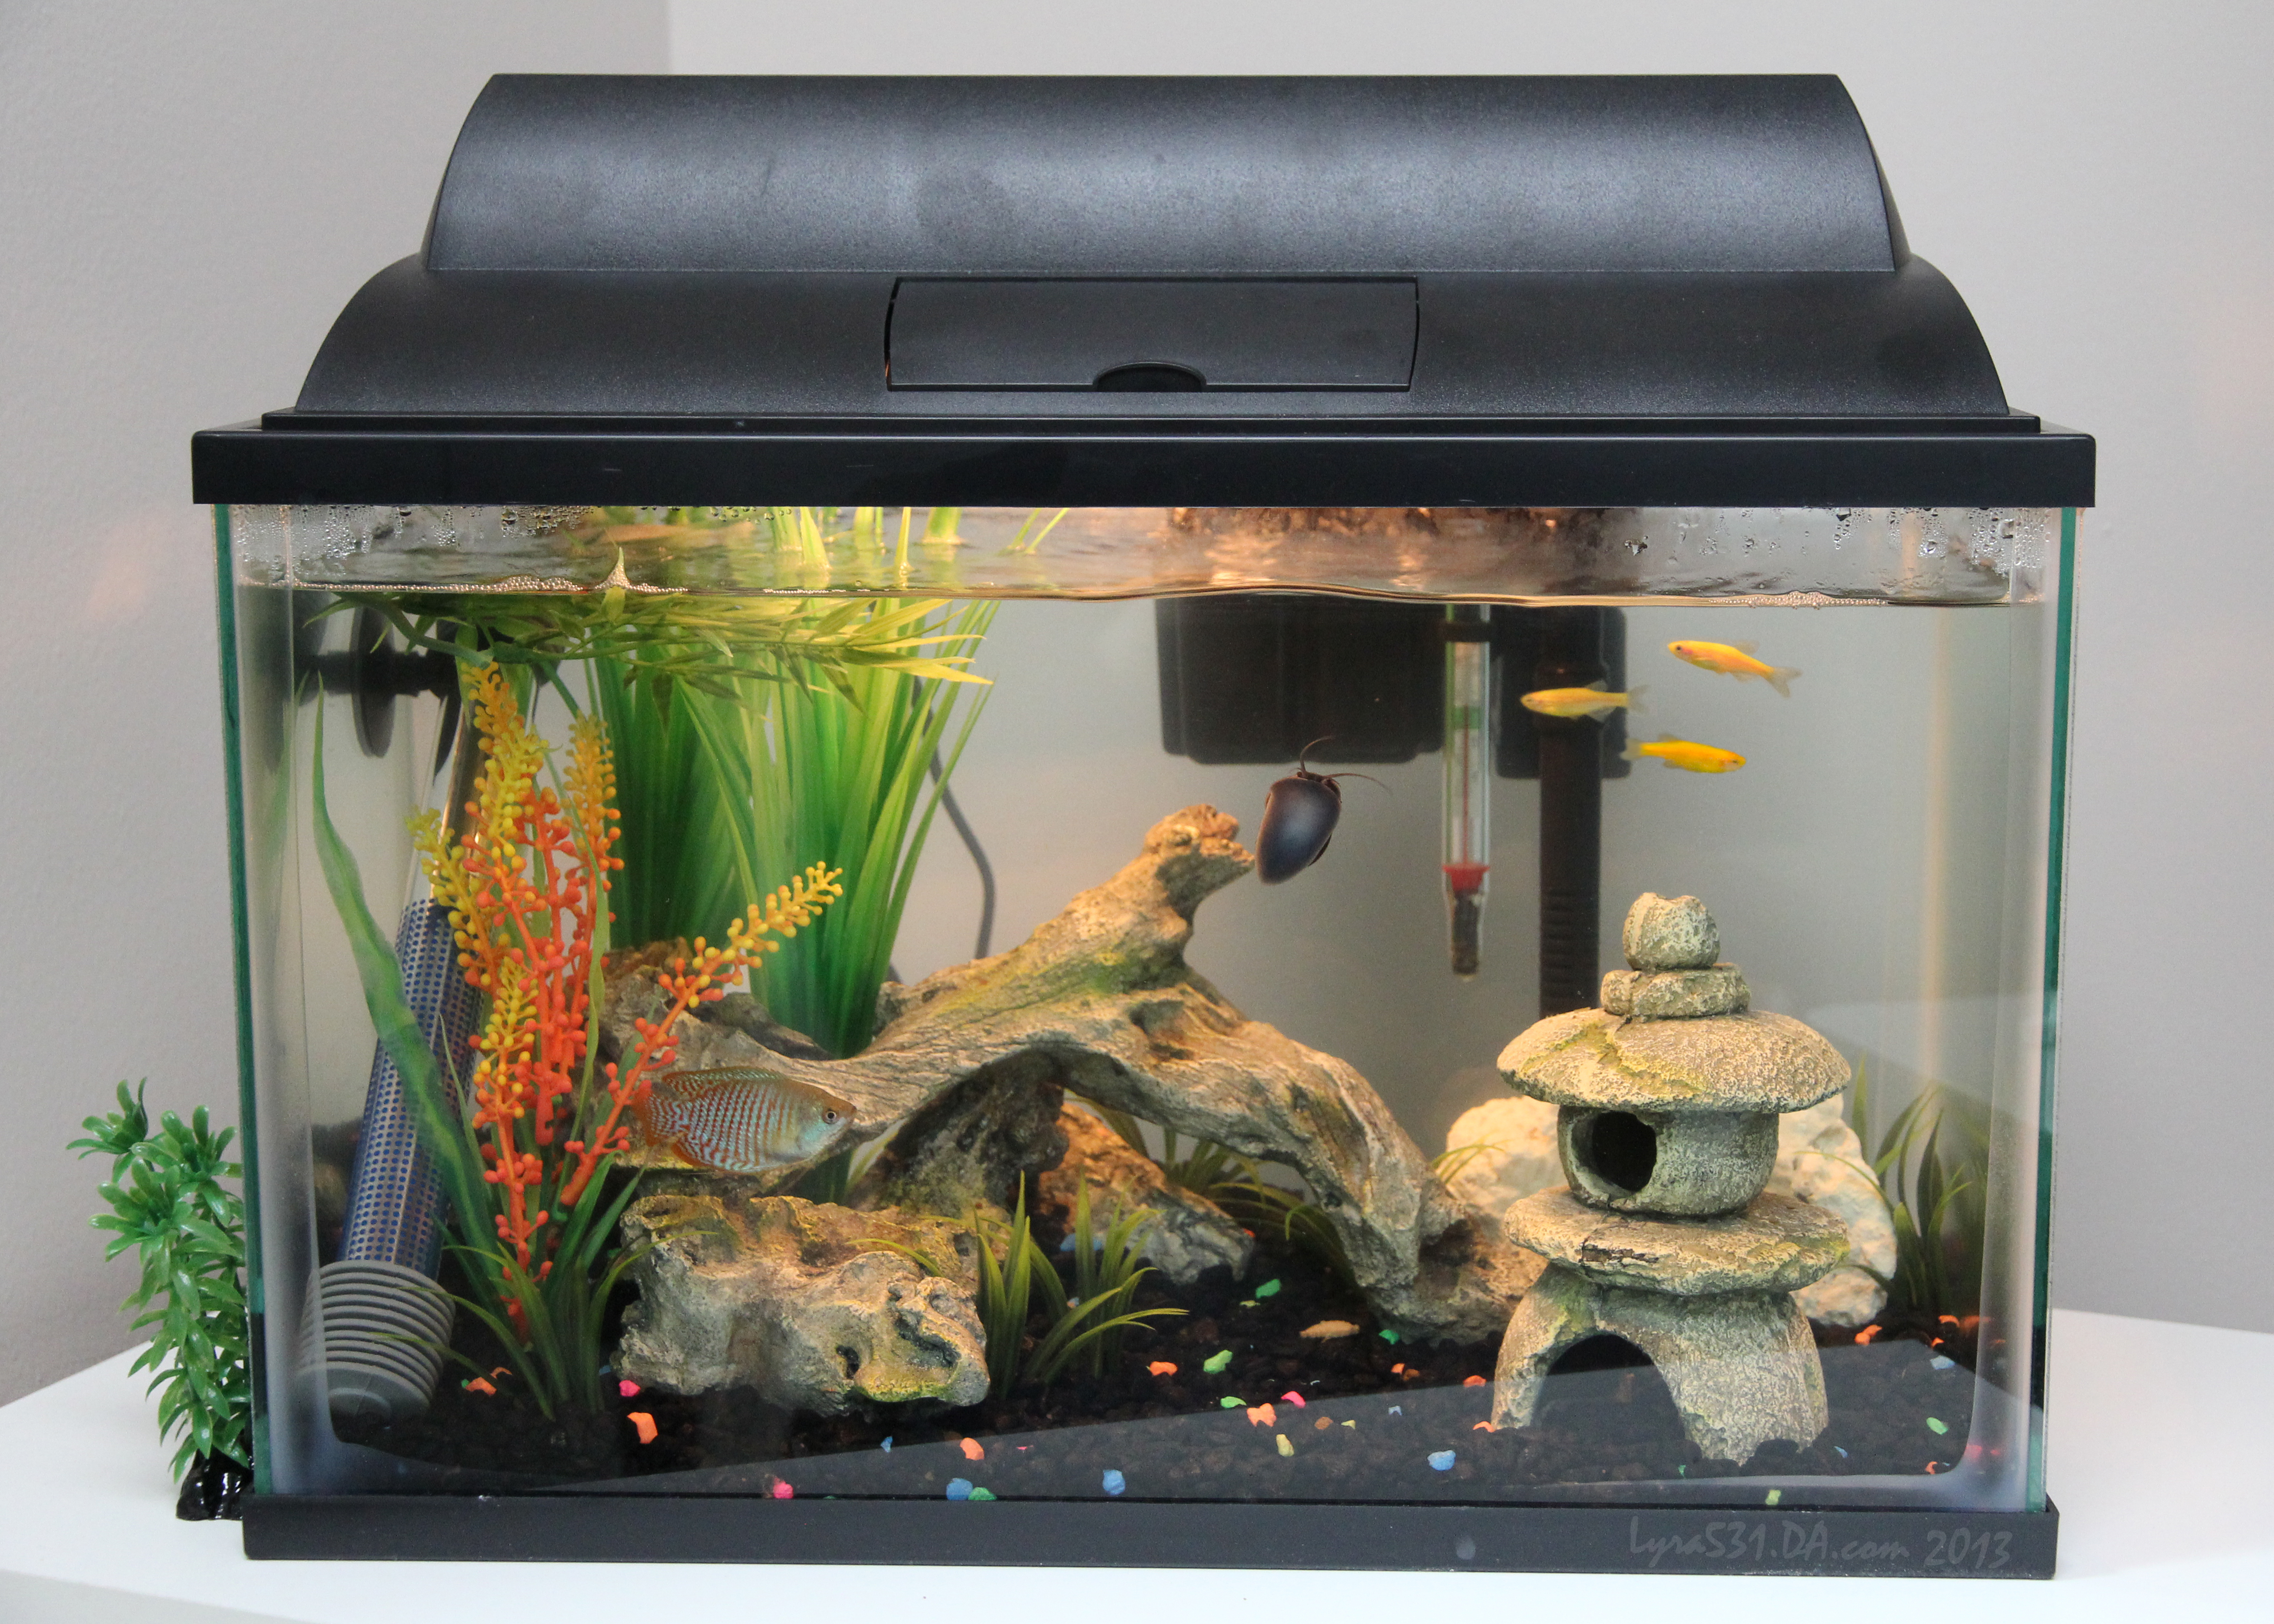 5 gallon fish tank how big how big is a 5 gallon fish for 5 gallon fish tanks